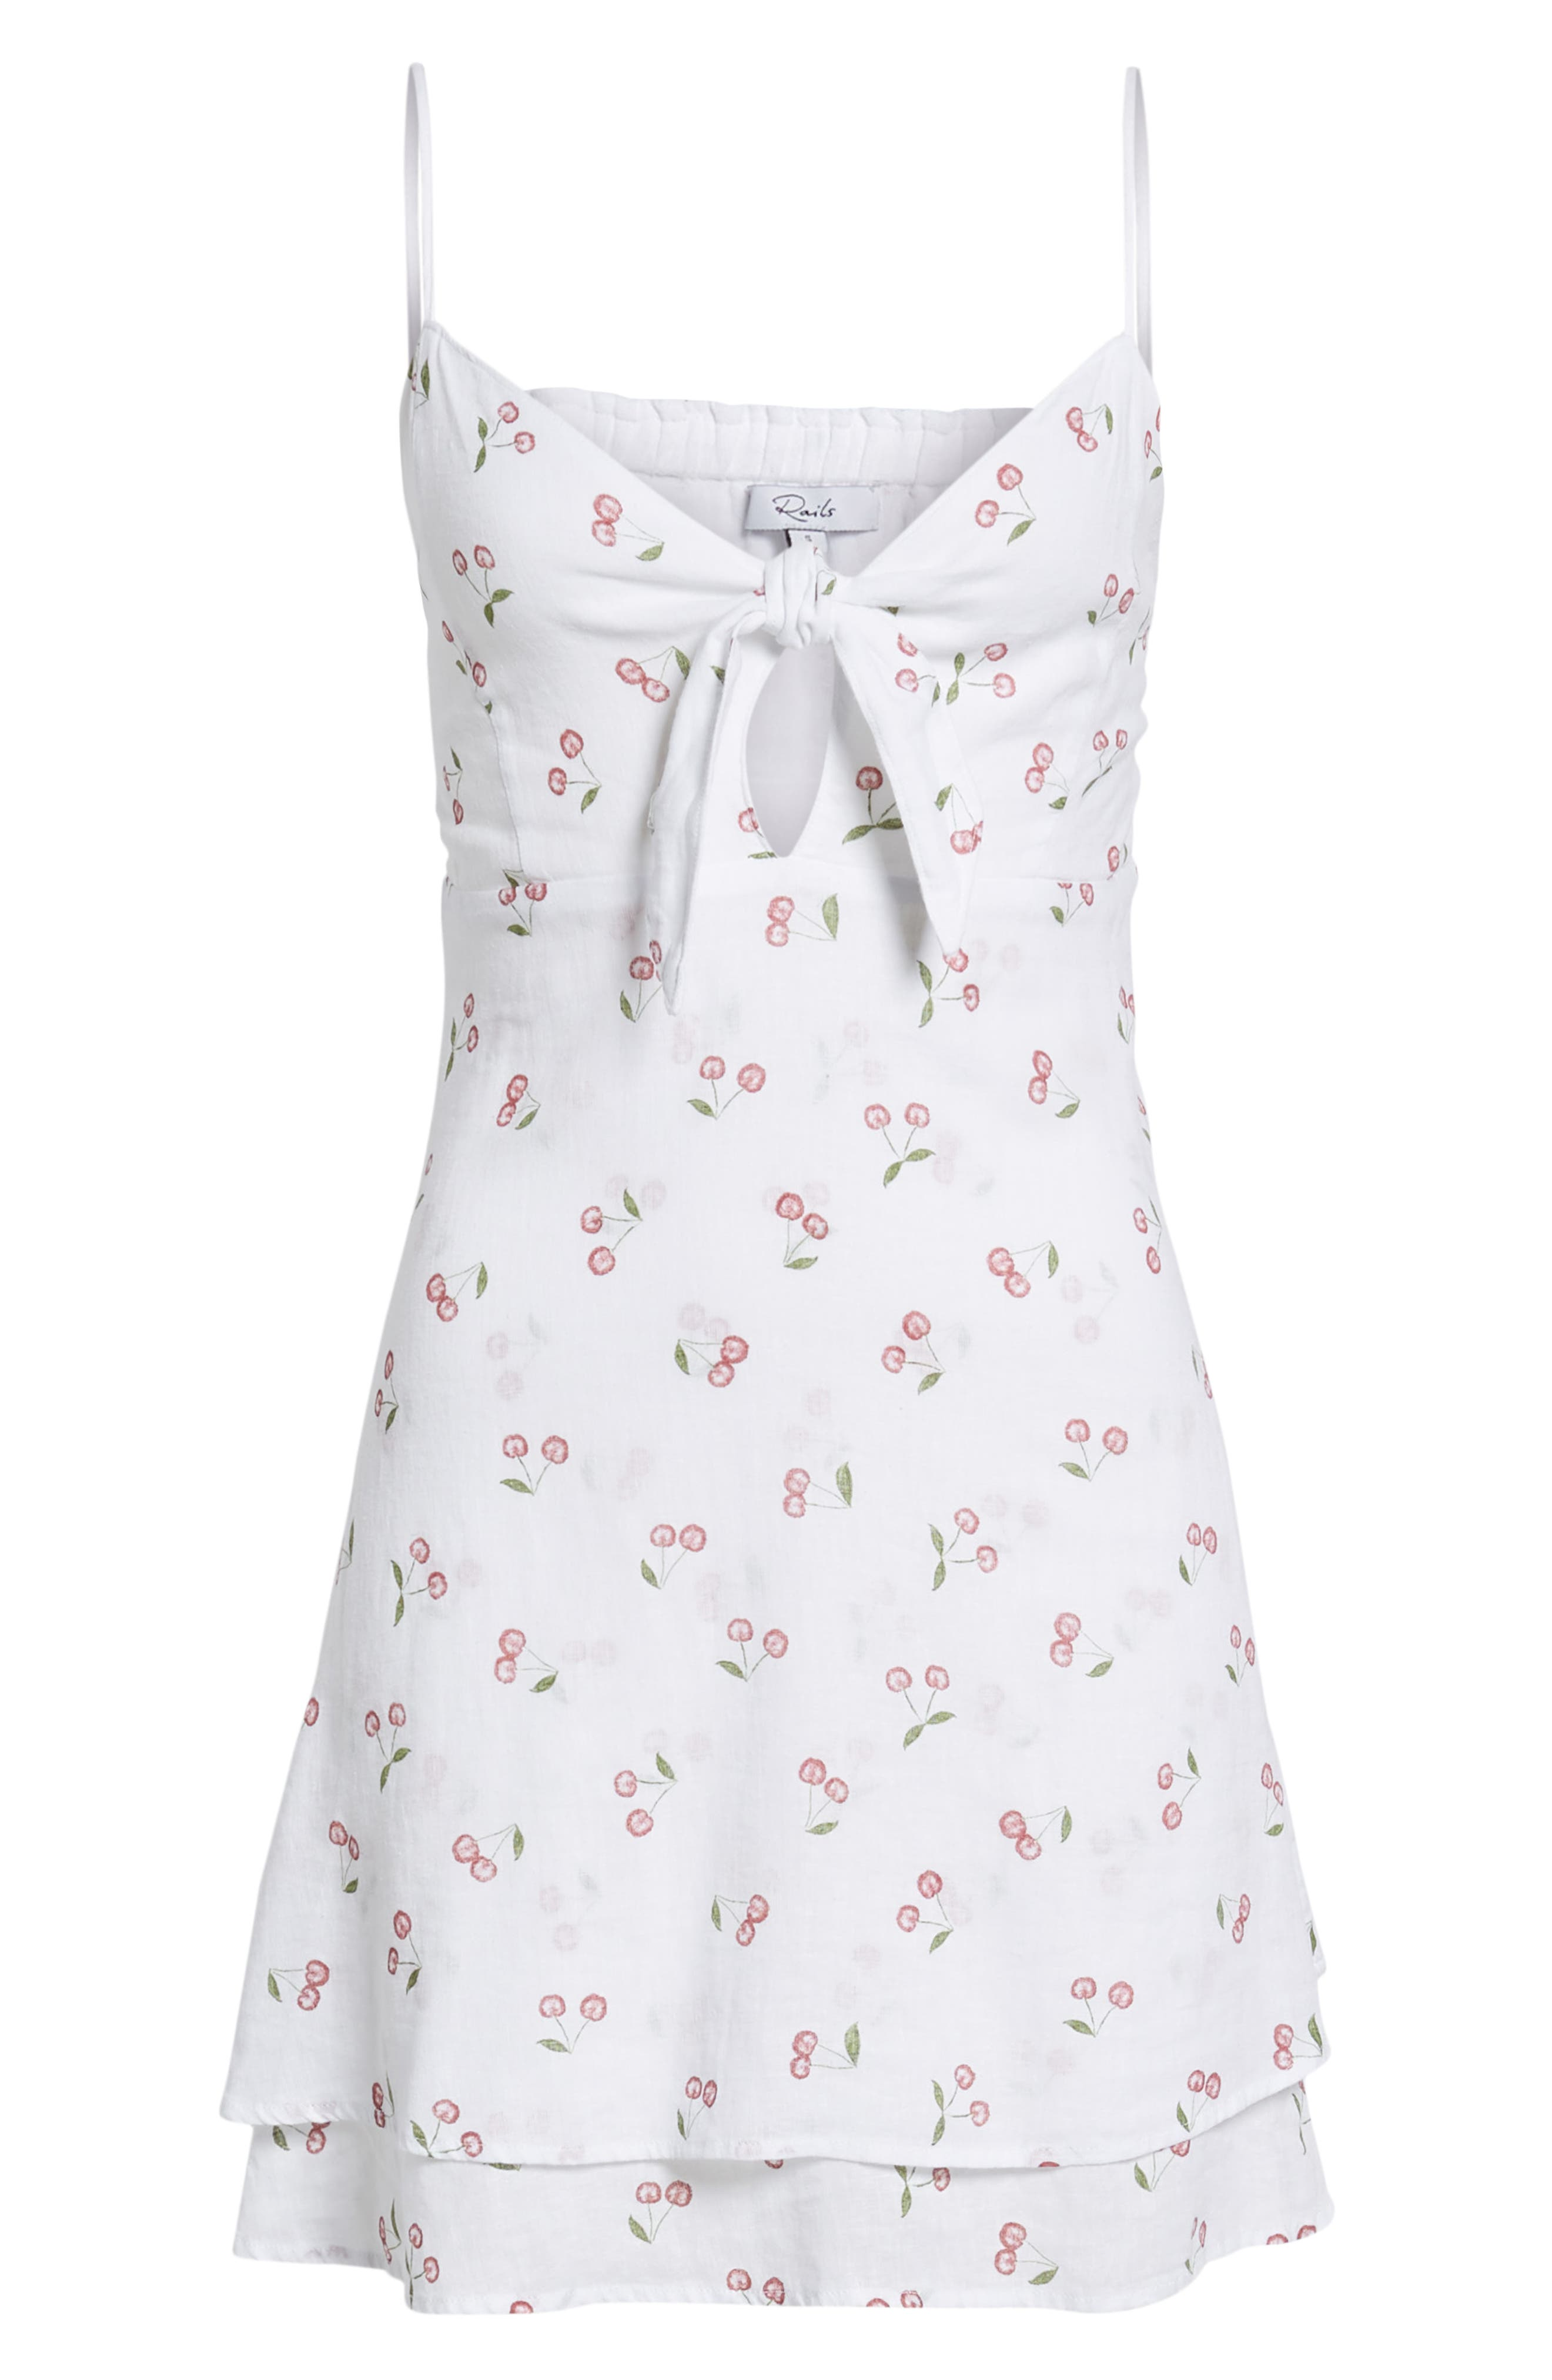 August Daisy Tie Front Dress,                             Alternate thumbnail 8, color,                             White Cherries